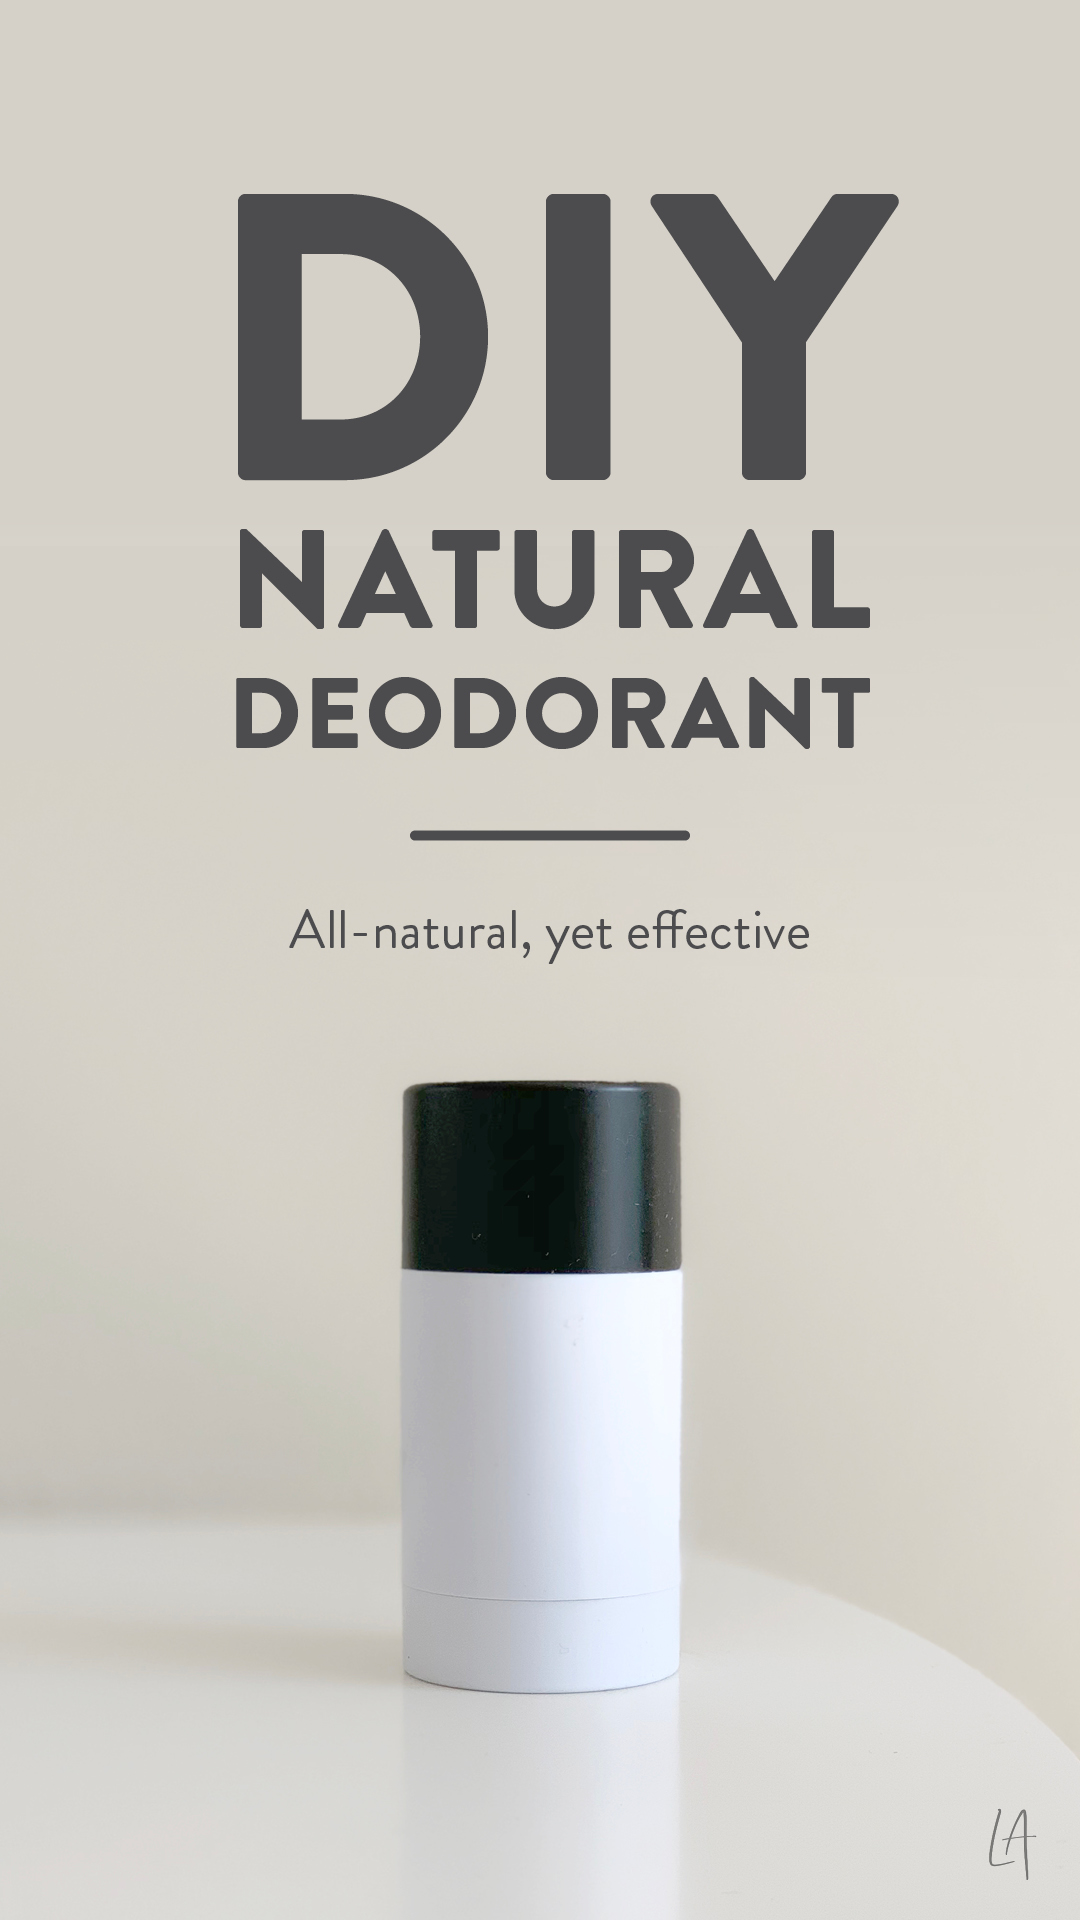 DIY Natural deodorant image